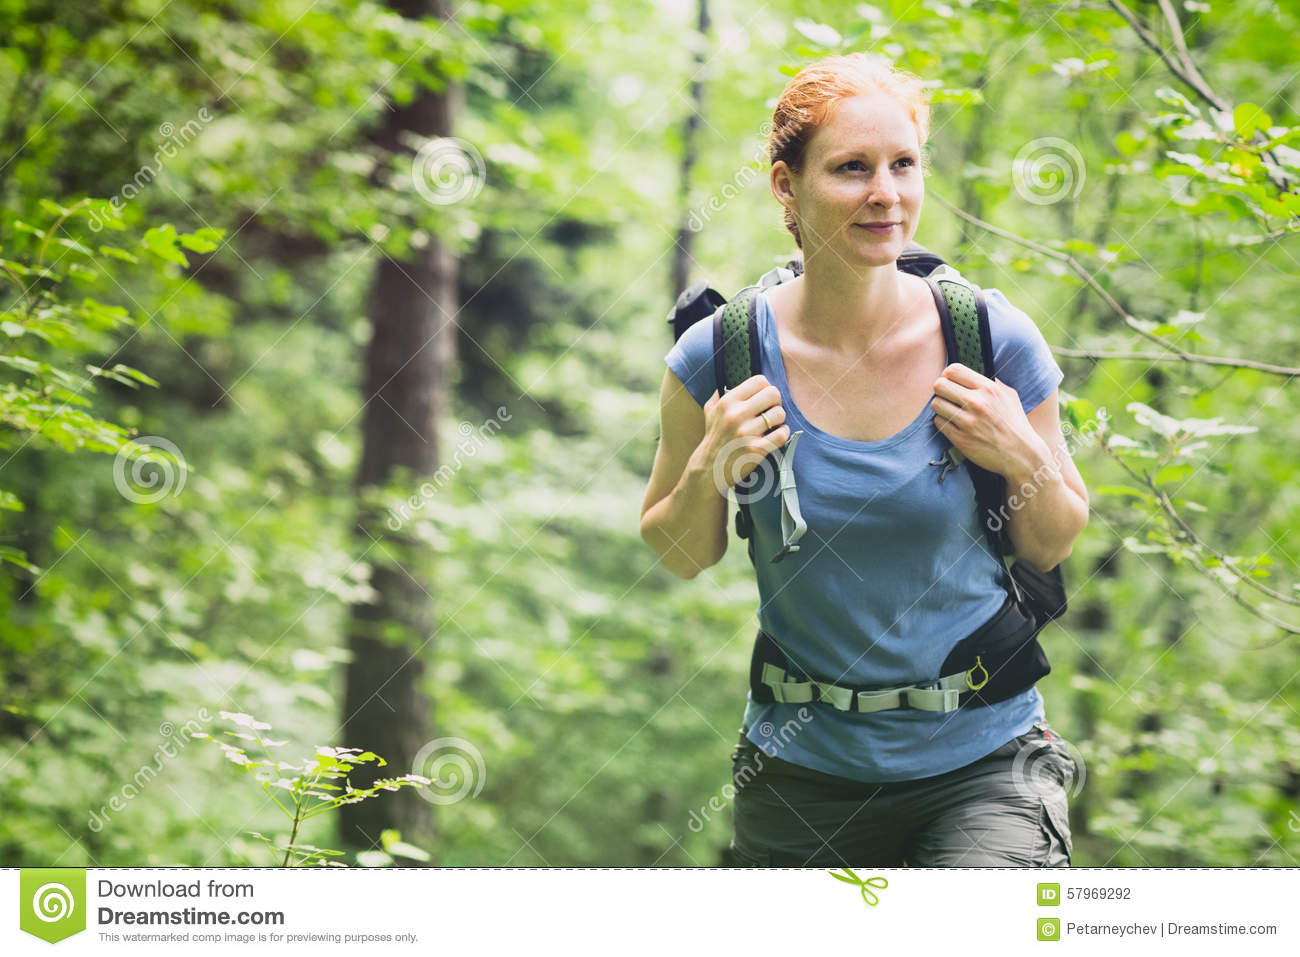 An active young woman hiking in a mountain forest by summer.